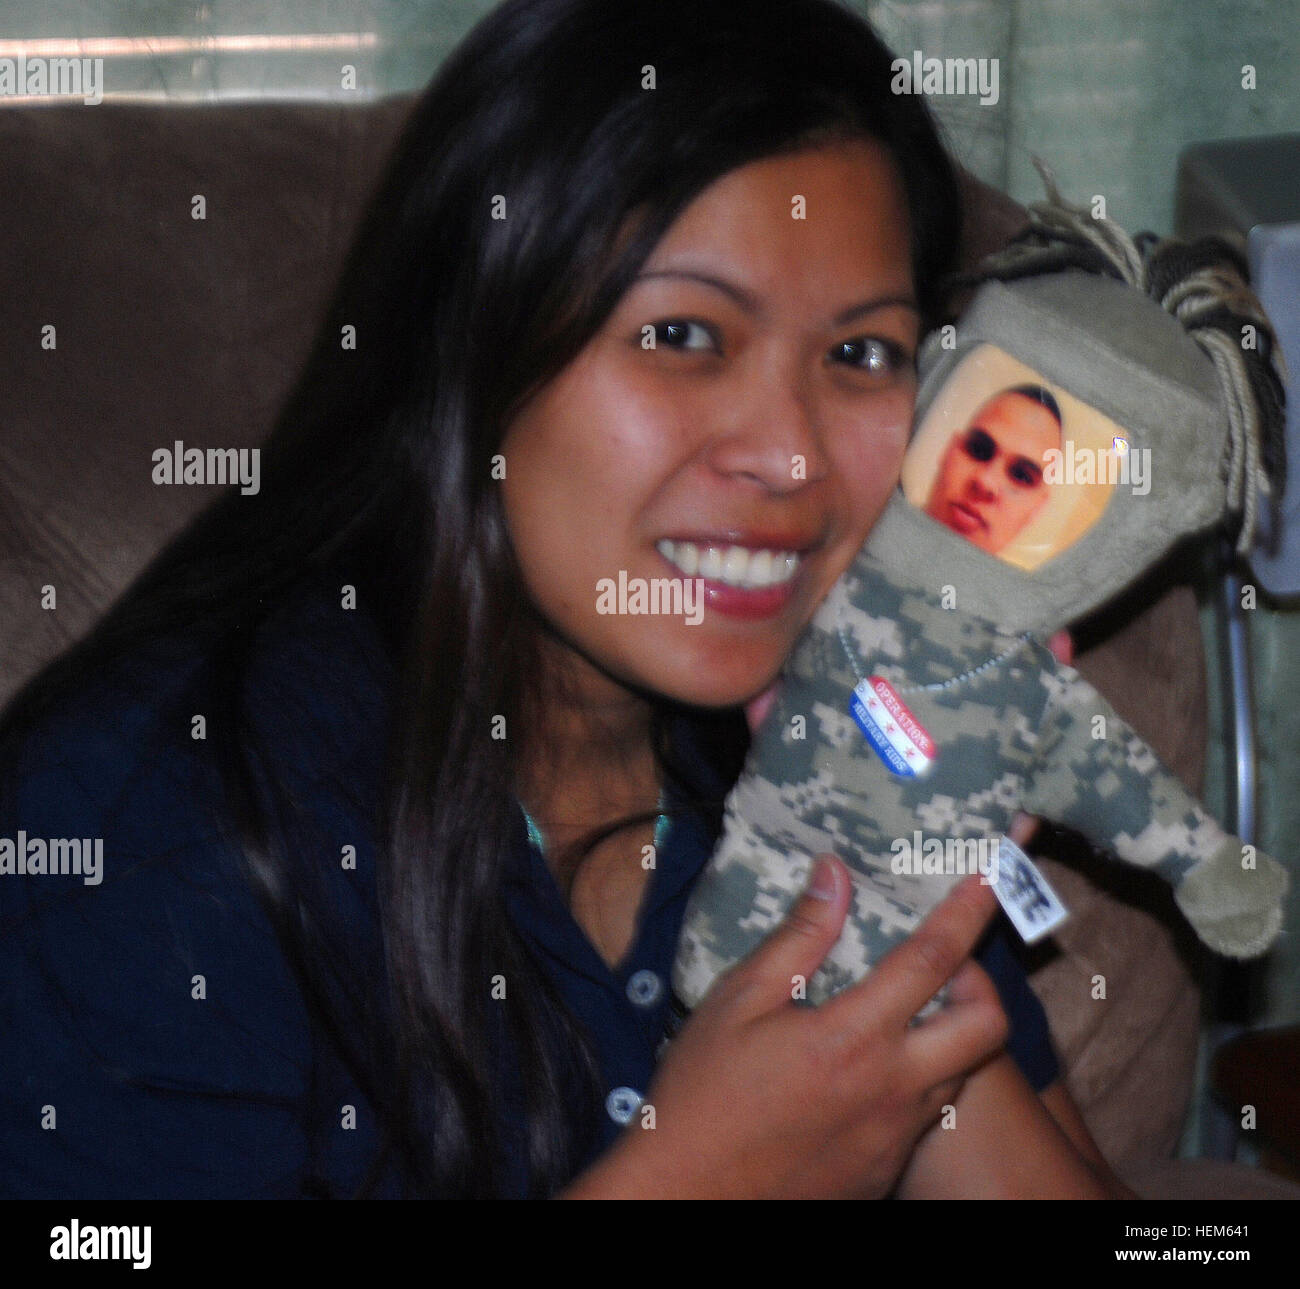 Melit Rodriquez hugs one of her children's favorite toys a 'daddy doll,' May 13, 2012. Rodriquez says - Stock Image